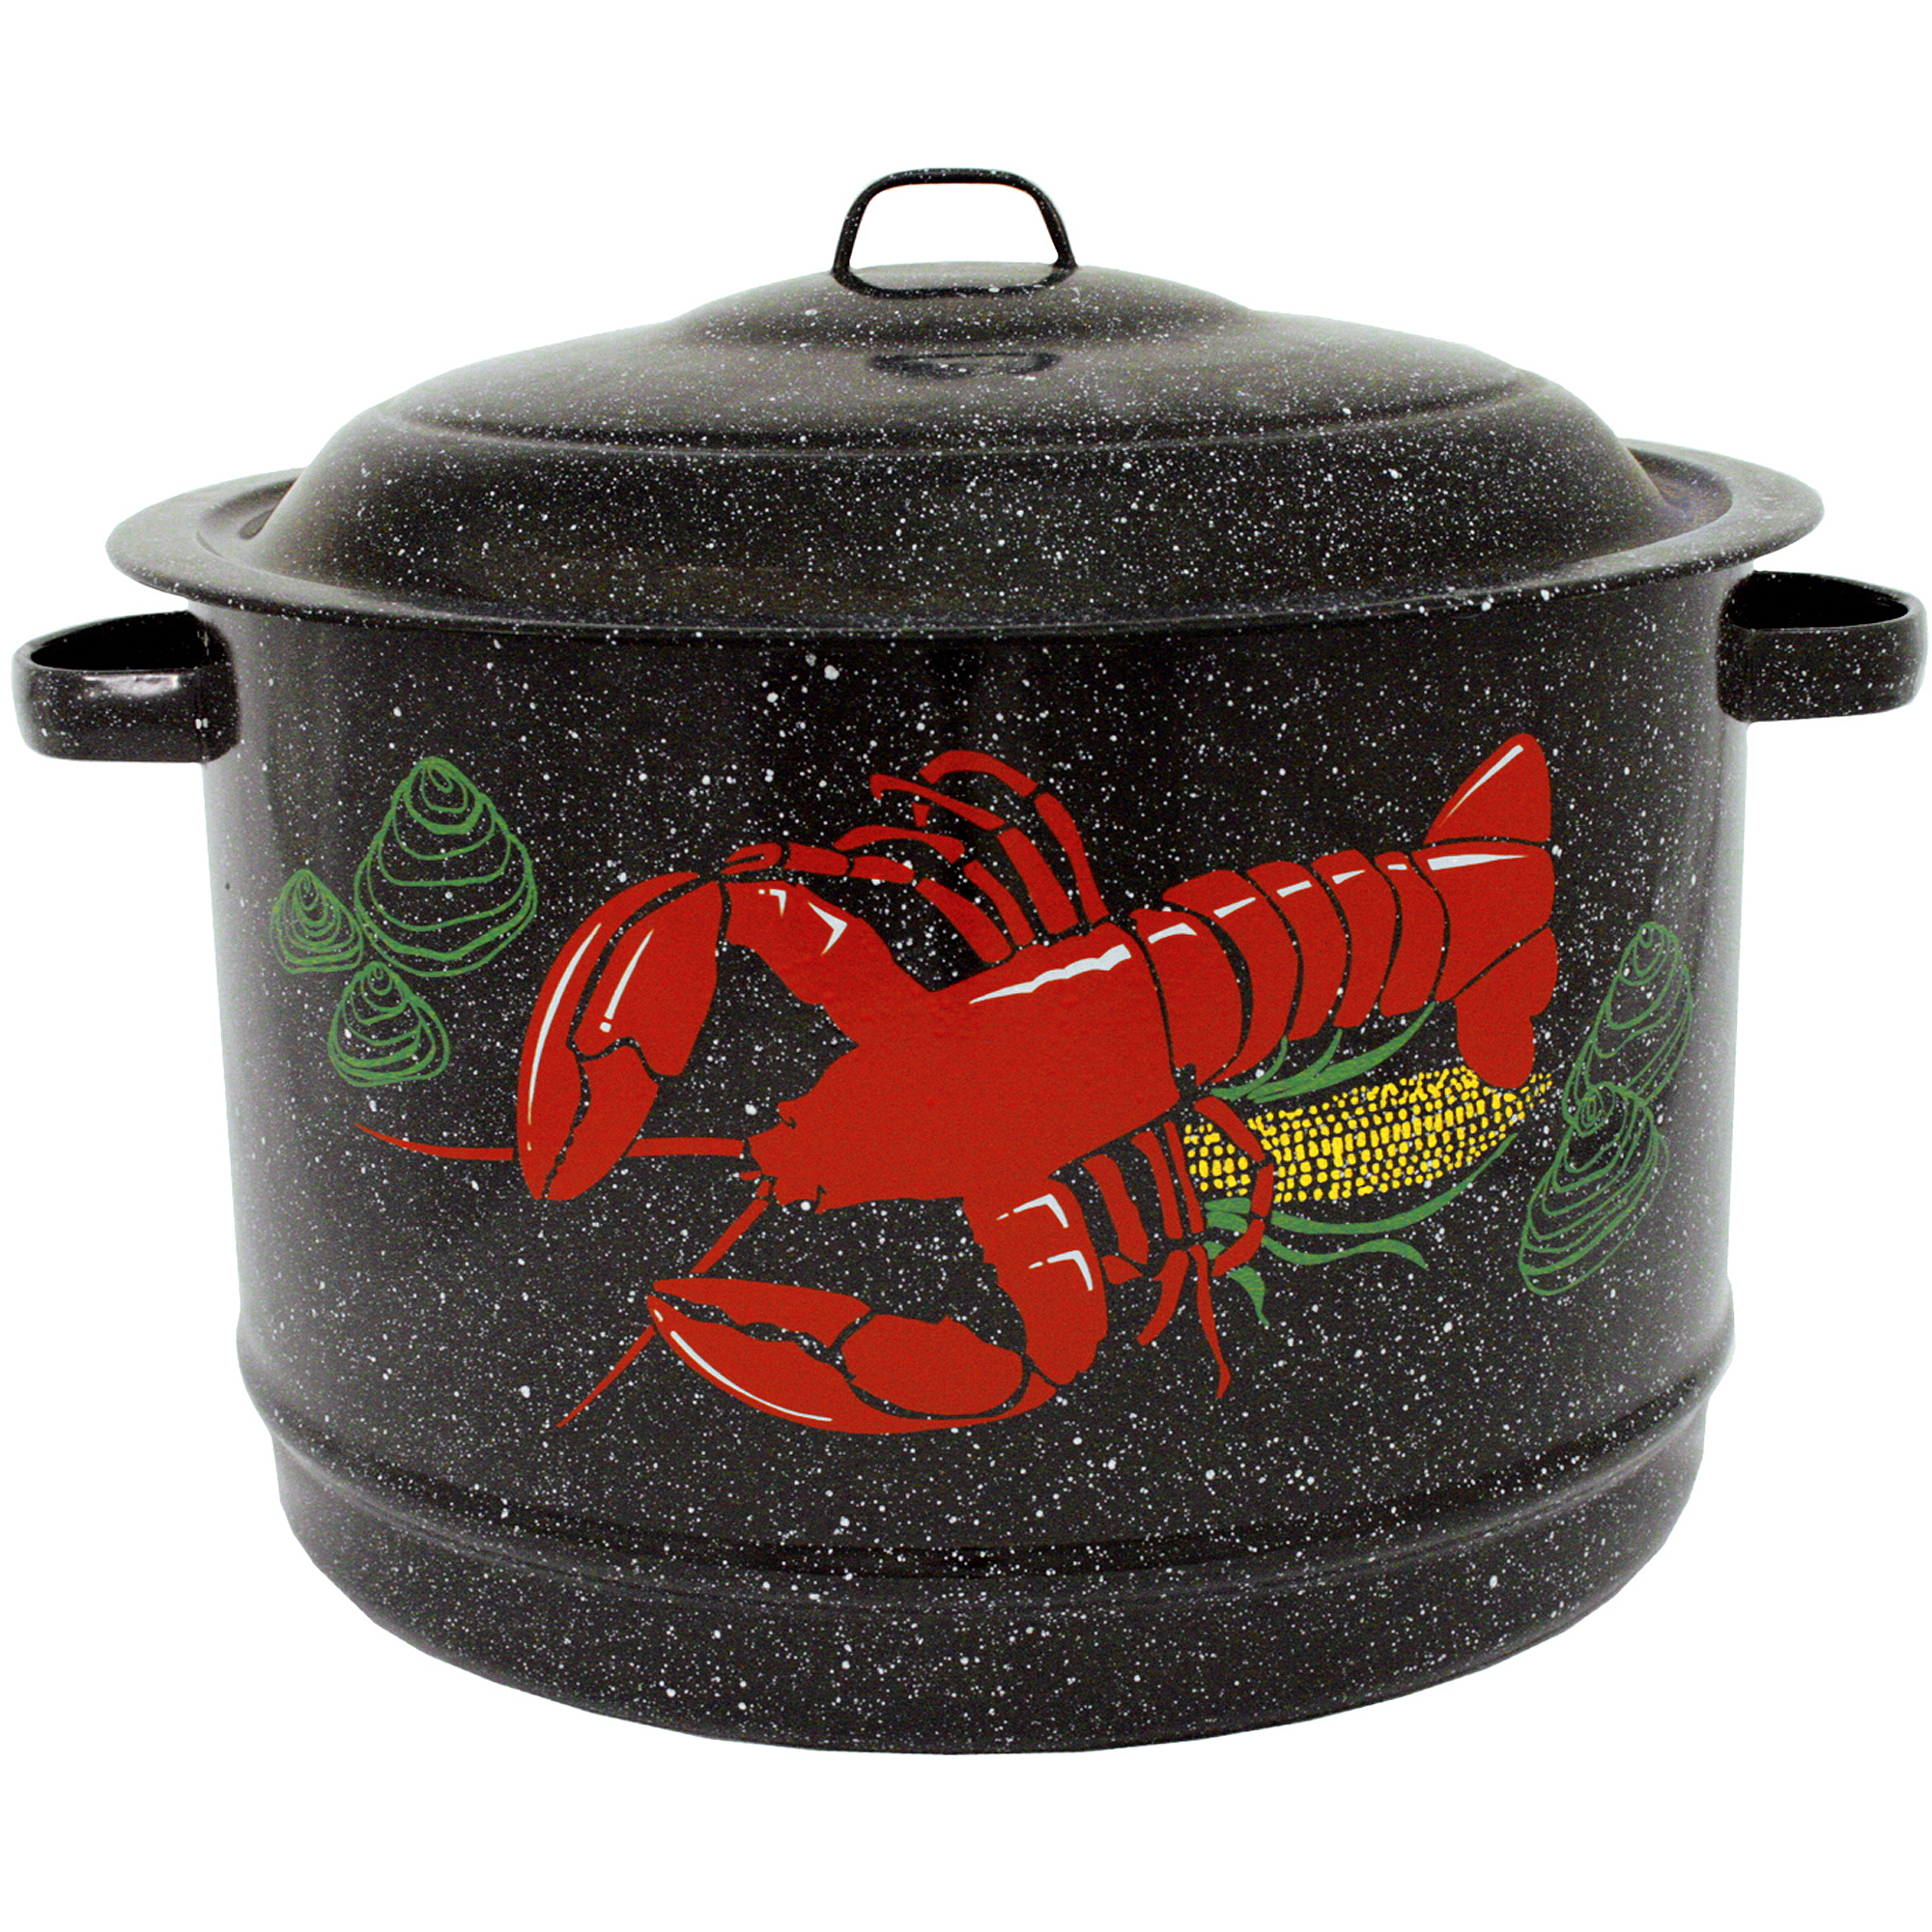 Granite Ware 19-Quart Decorated Lobster Pot, Black